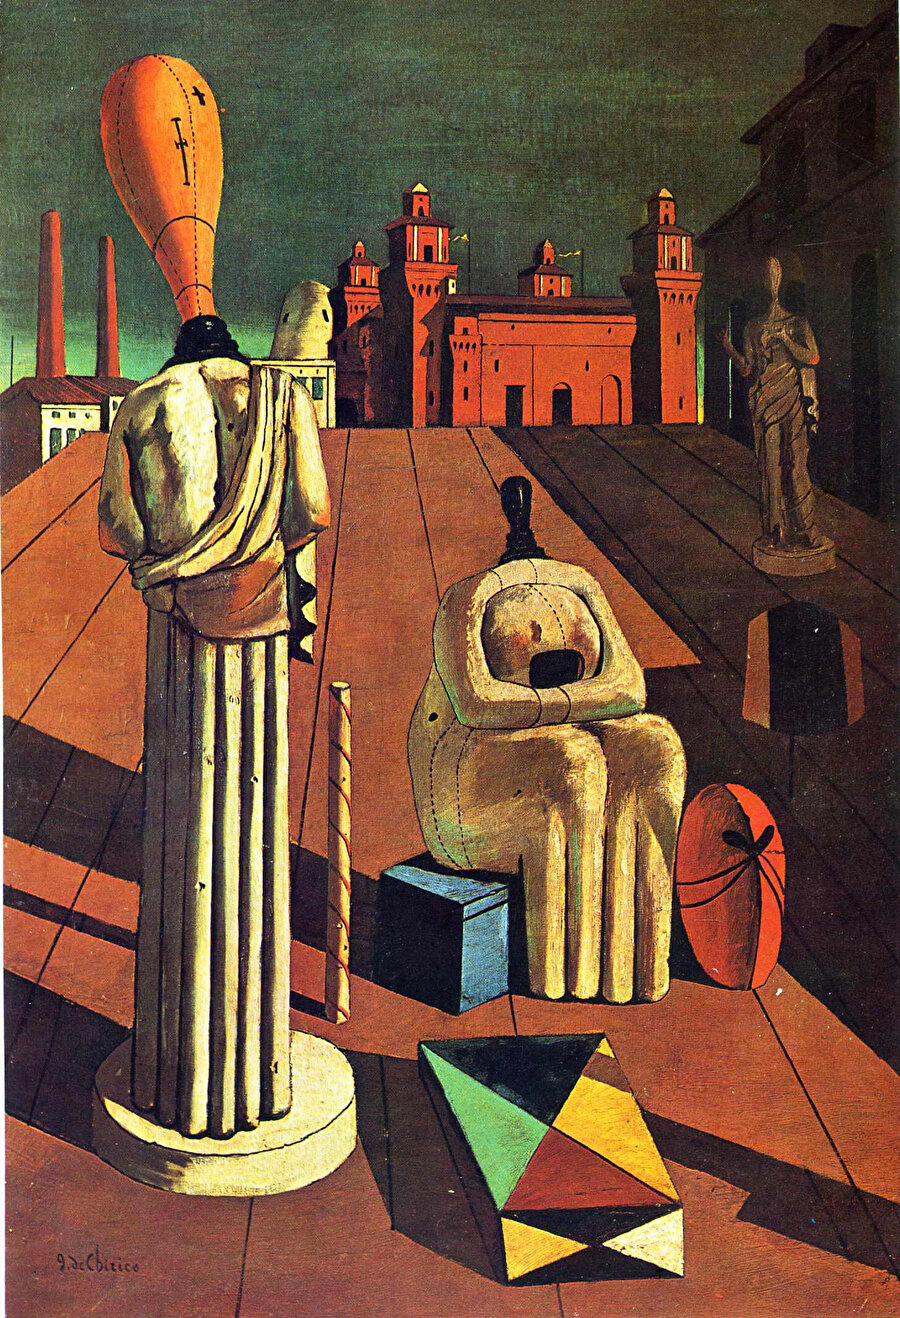 The Disquieting Muses by Giorgio de Chirico, 1947